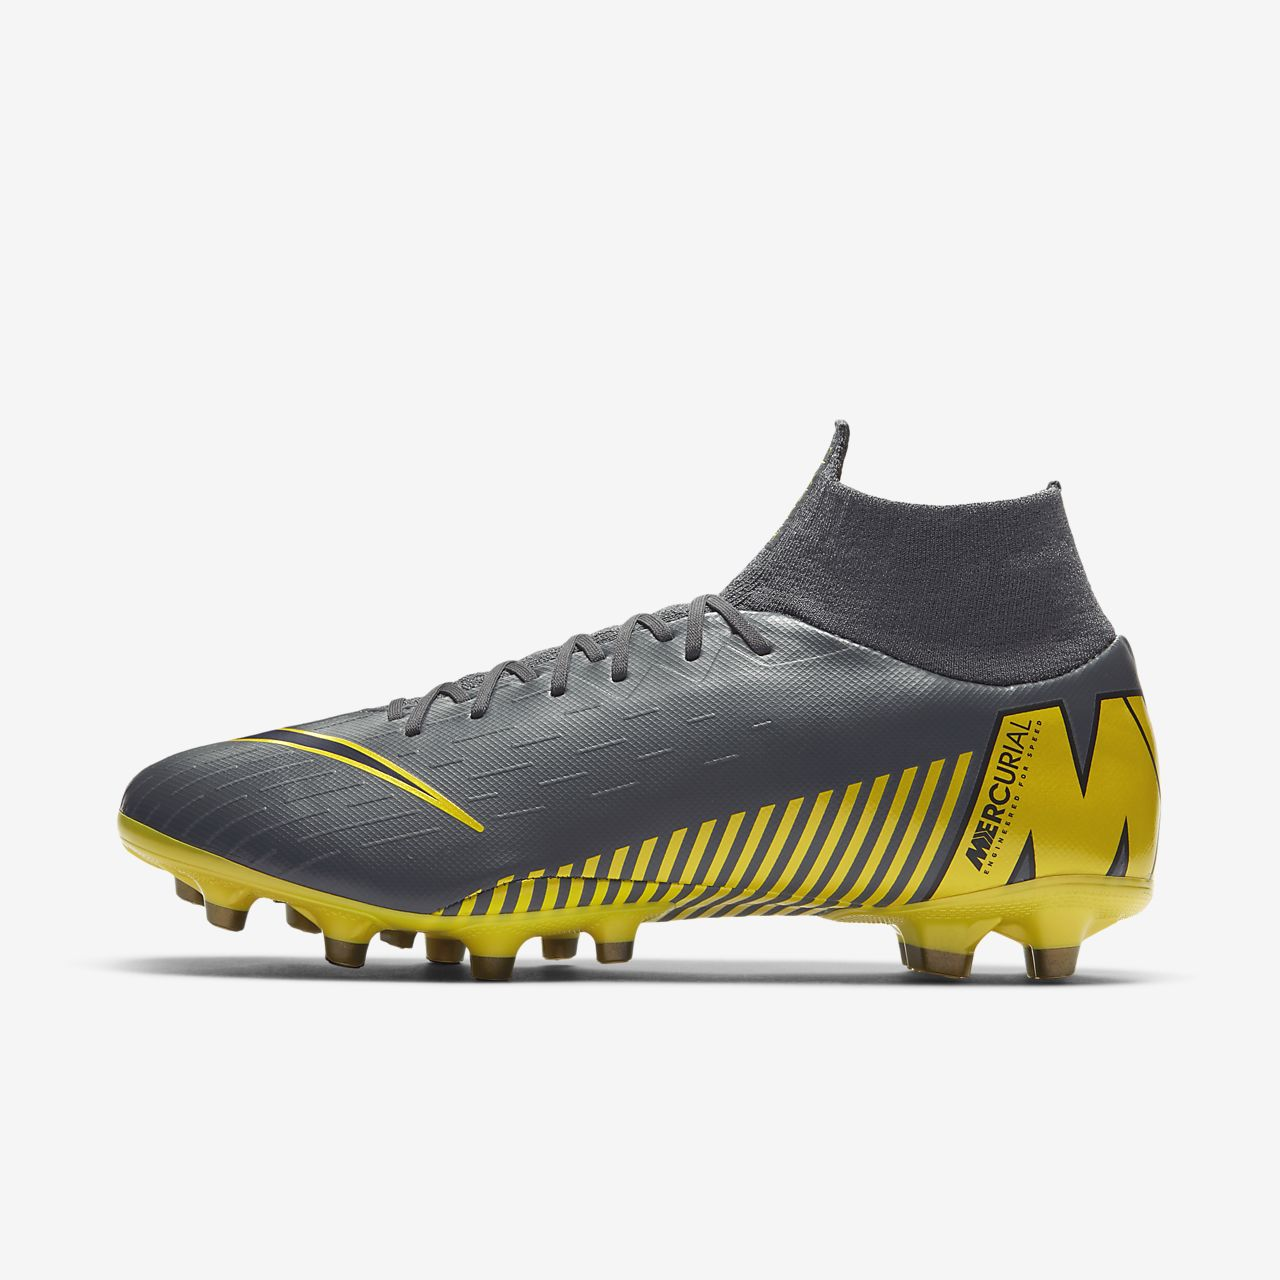 5f211e5447c3 Nike Mercurial Superfly VI Pro AG-PRO Artificial-Grass Football Boot ...